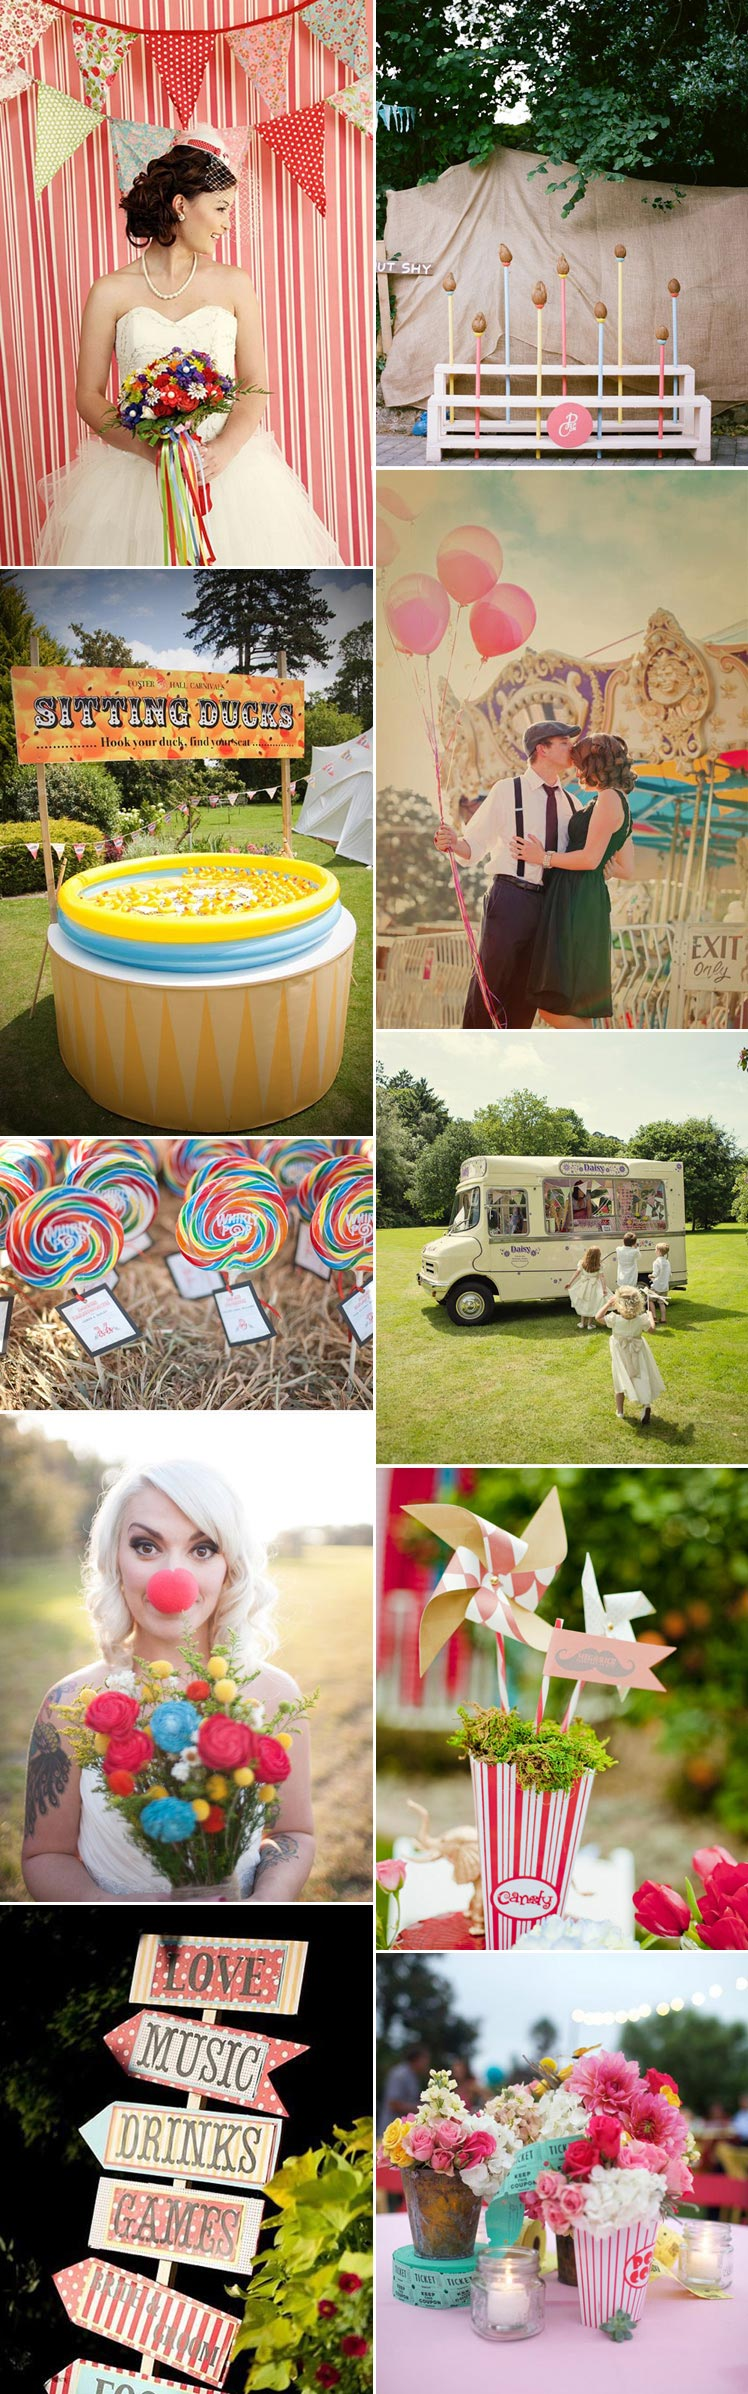 Fun filled fairground wedding ideas